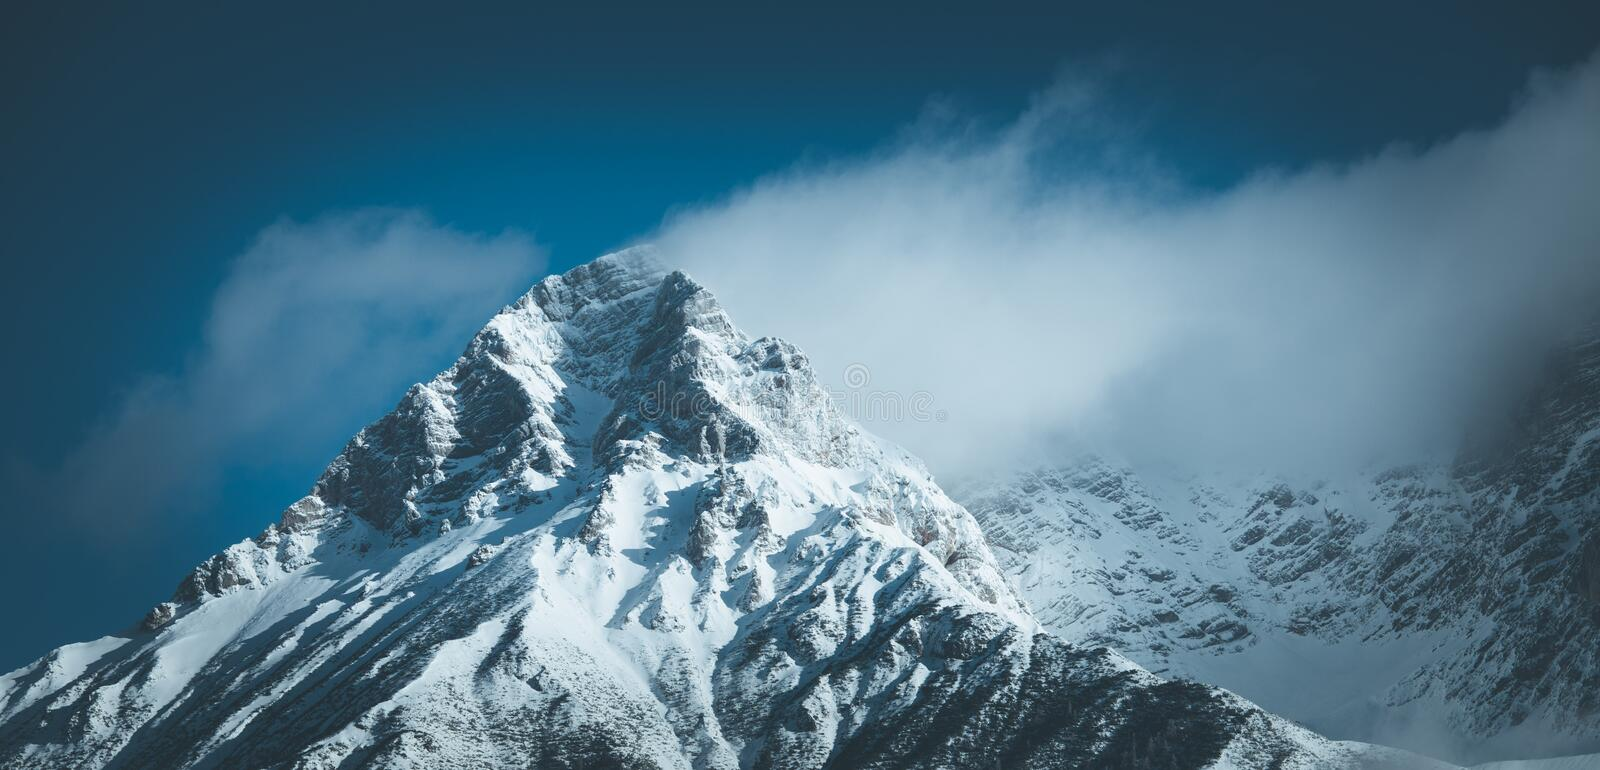 Epic snowy mountain peak with clouds in winter, landscape, alps, austria. Lpeak cliffy adventure rock misty clear solid stone cliffhanger beautiful scenery royalty free stock photos